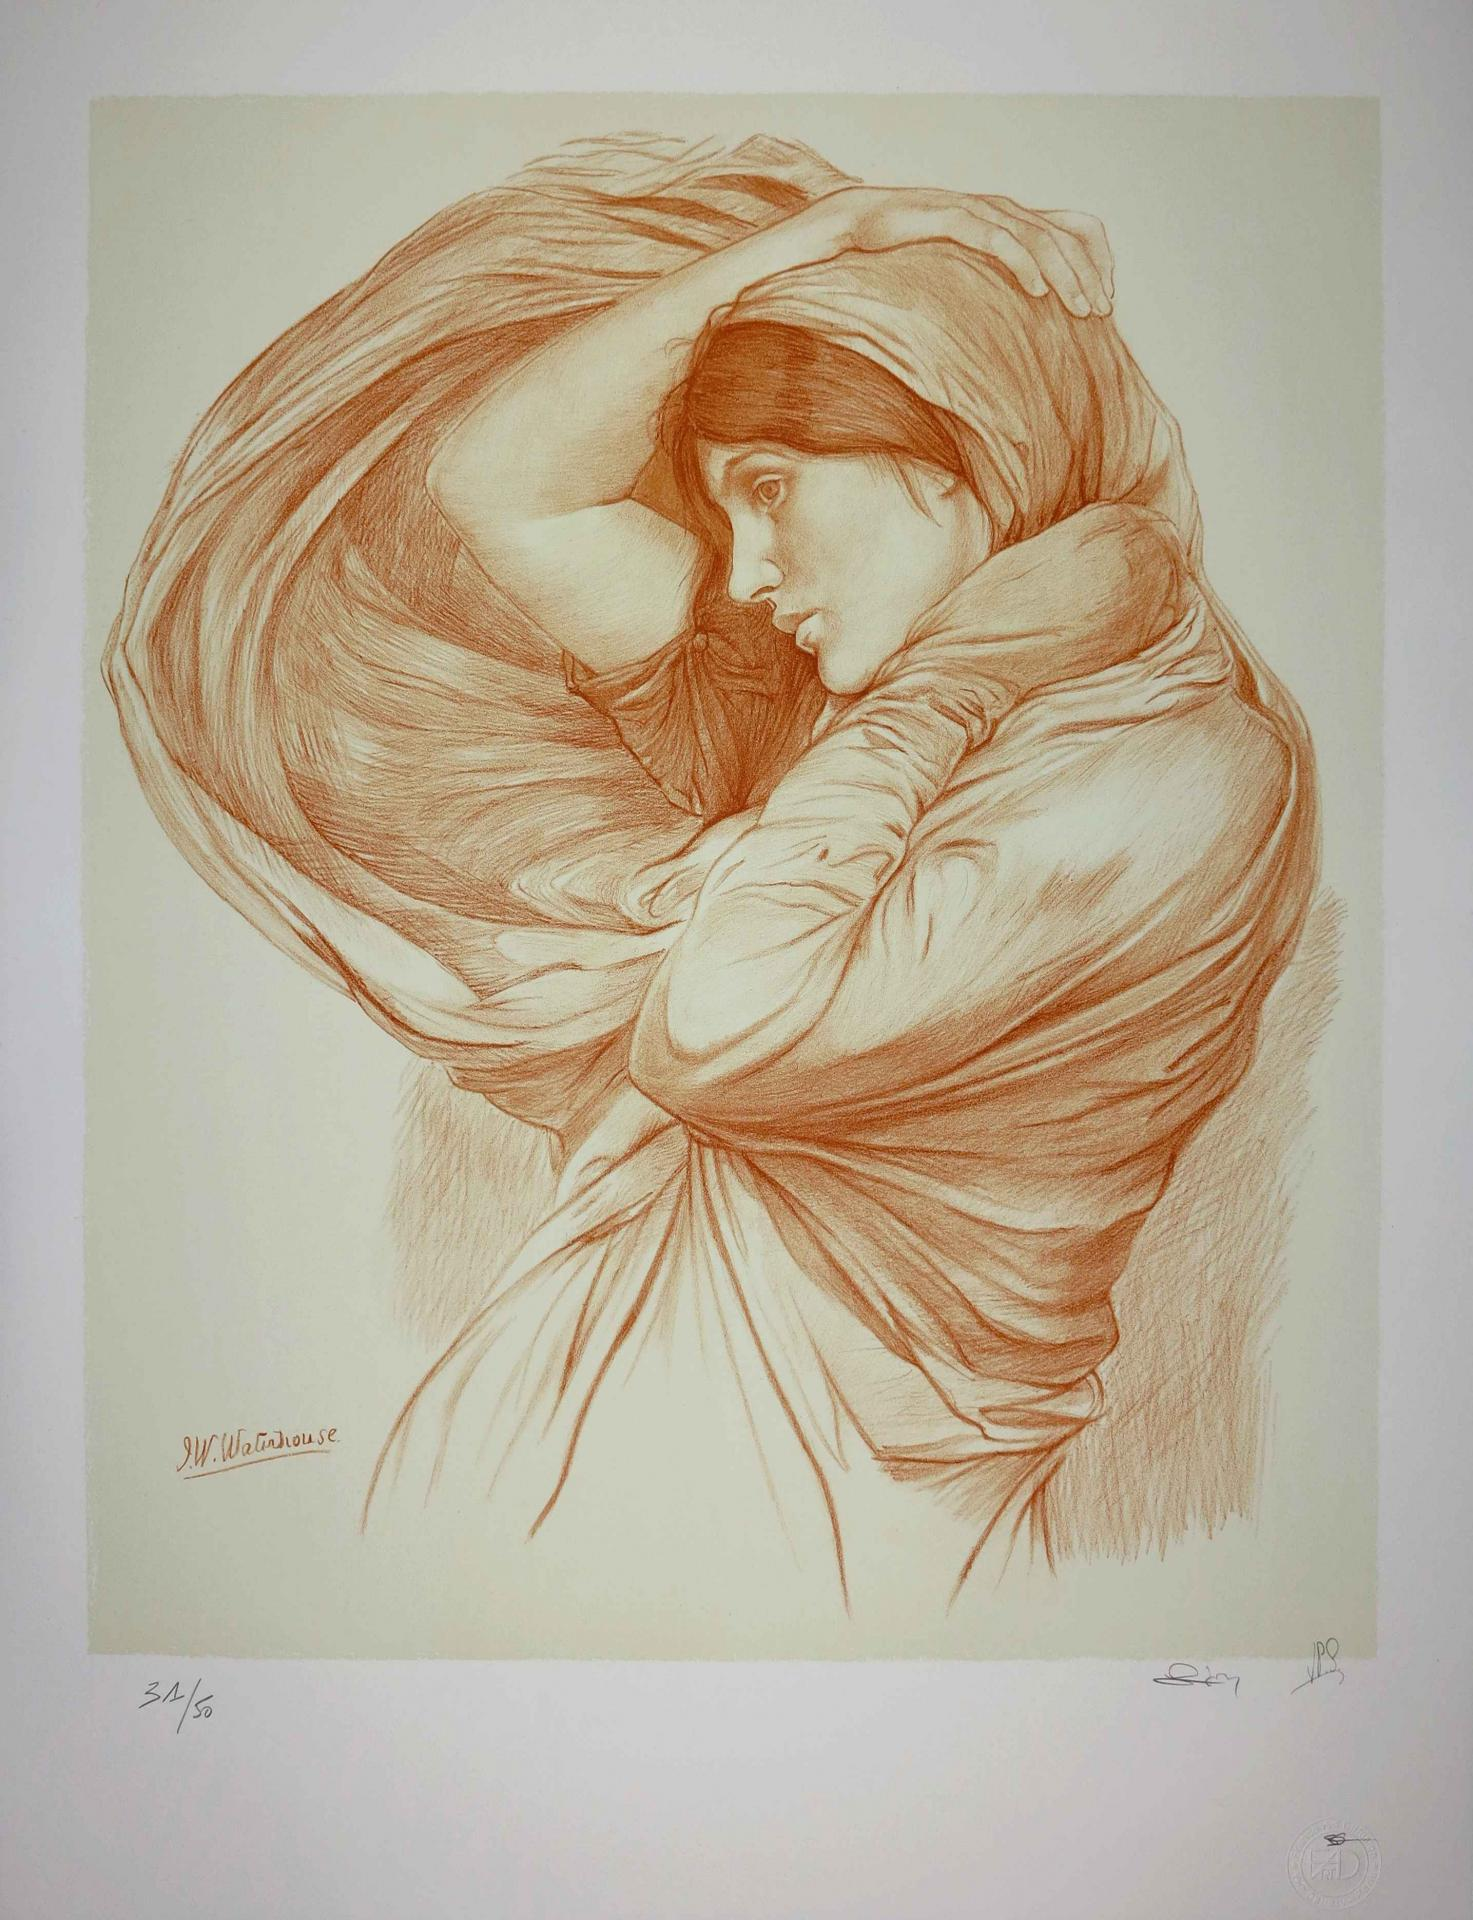 John William Waterhouse LITHOGRAPH